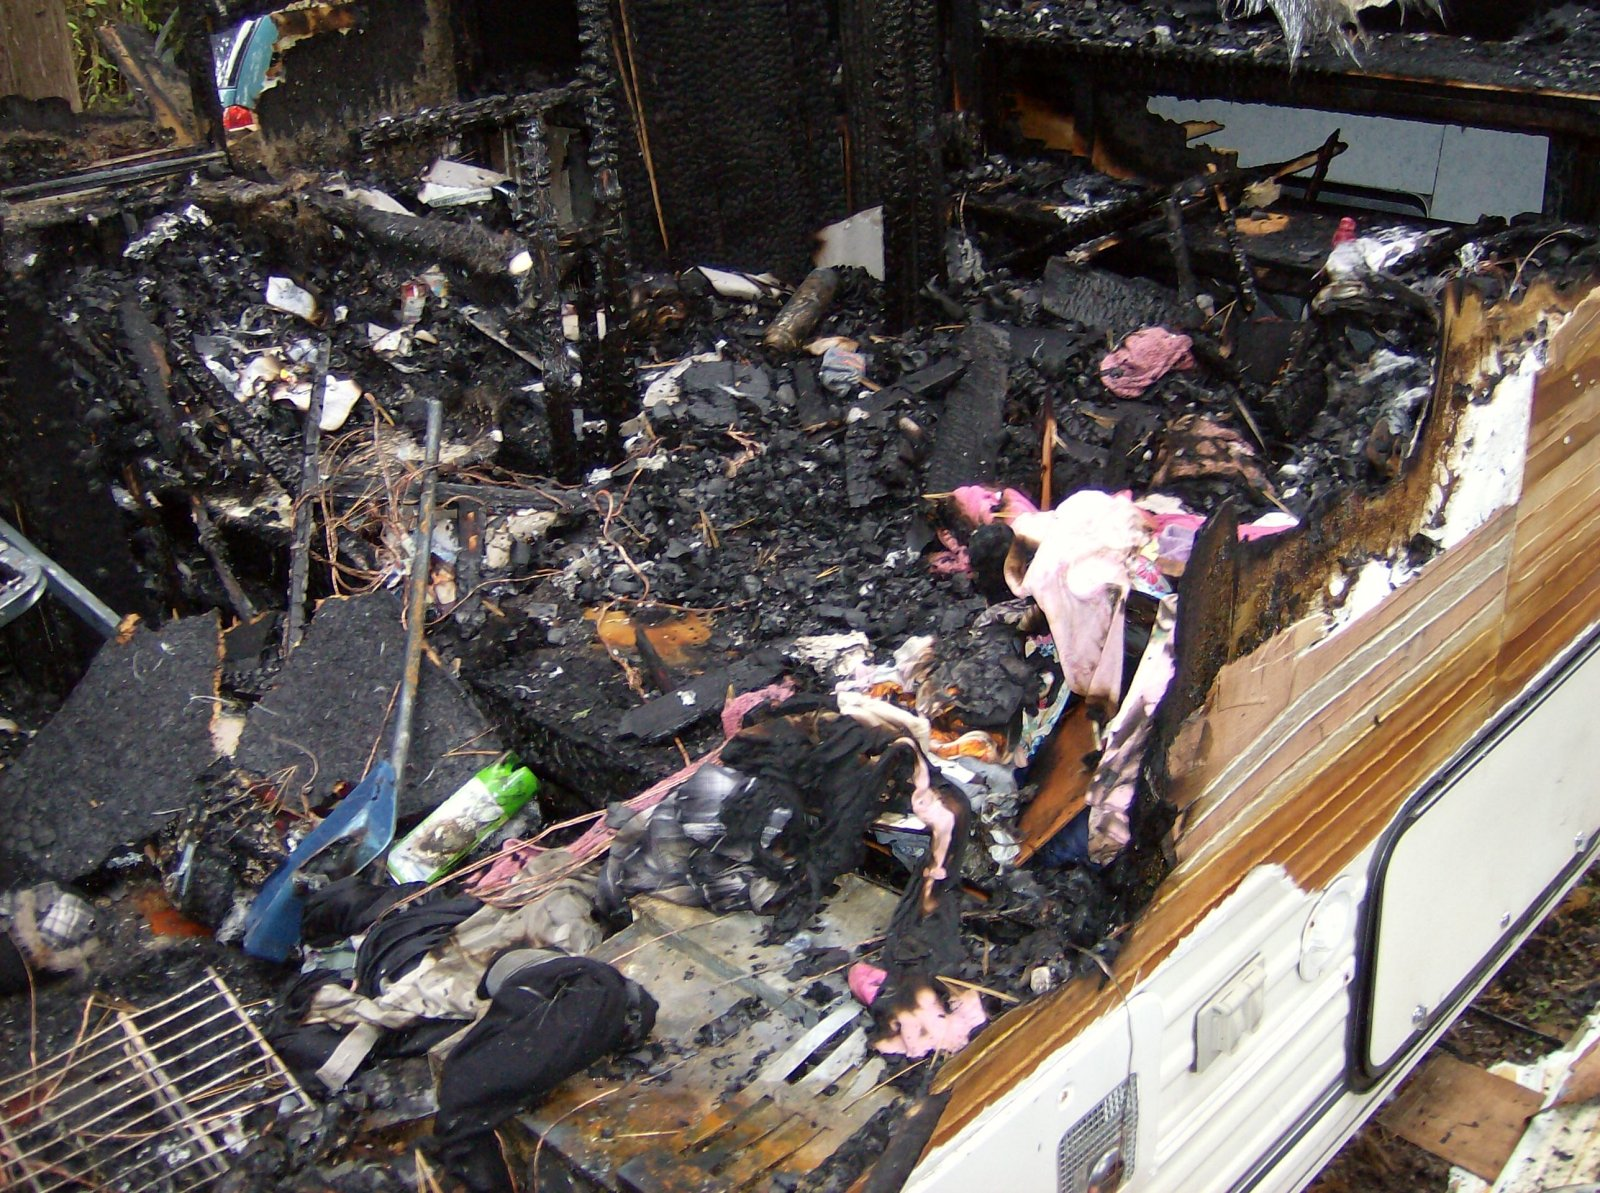 Click image for larger version  Name:Fire Damaged Trailer 008.jpg Views:103 Size:484.5 KB ID:112192